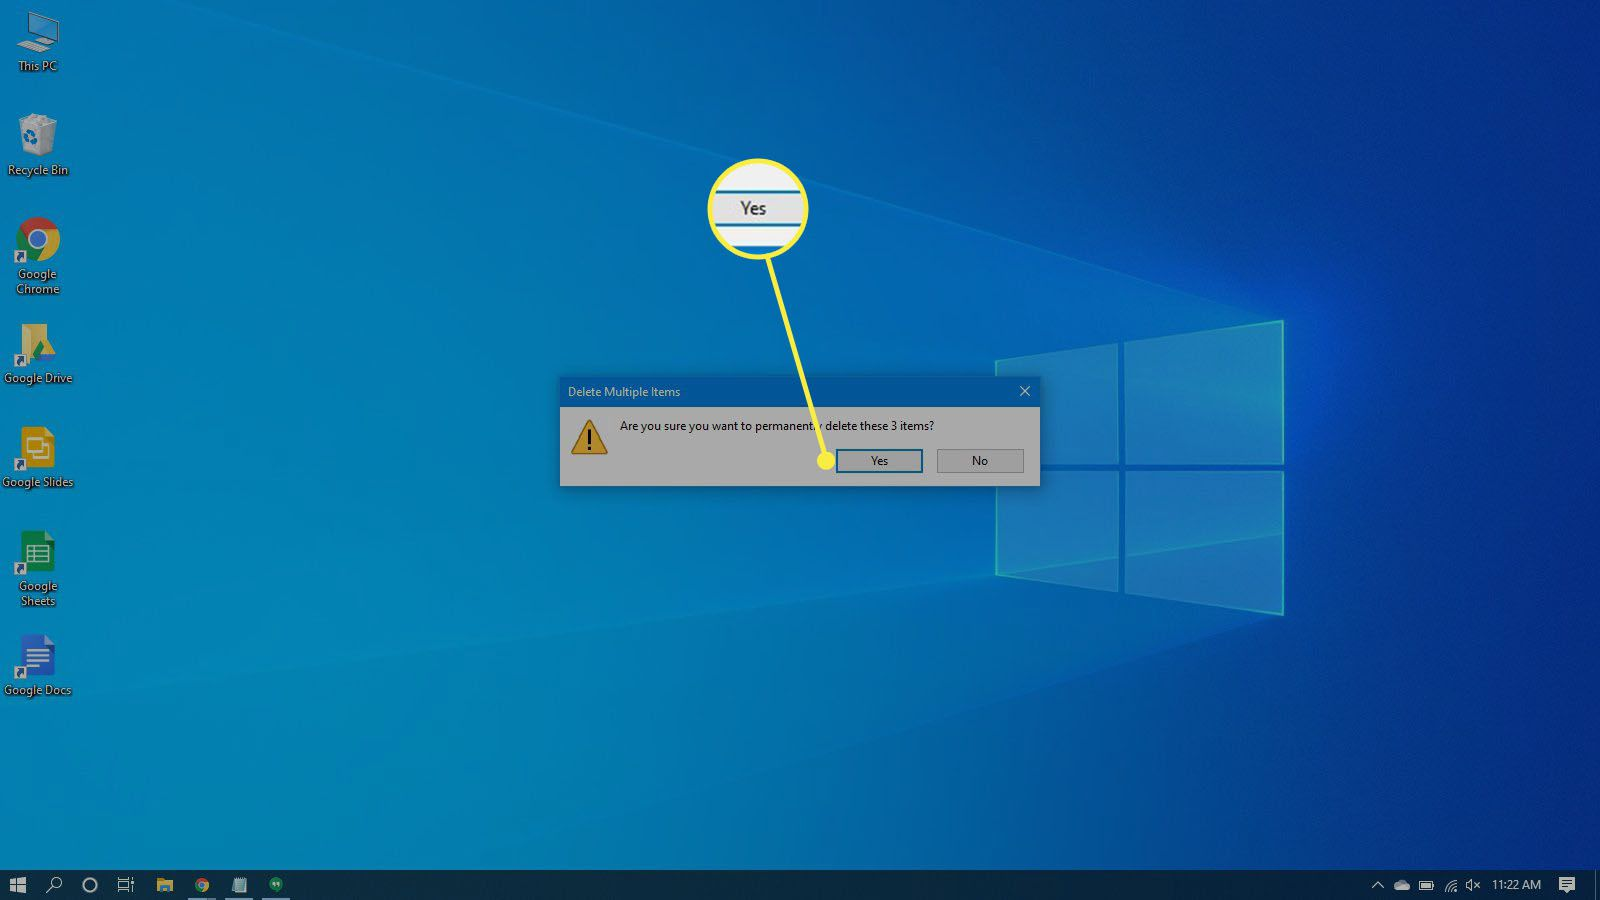 Confirming the deletion of files in the recycle bin in Windows 10.